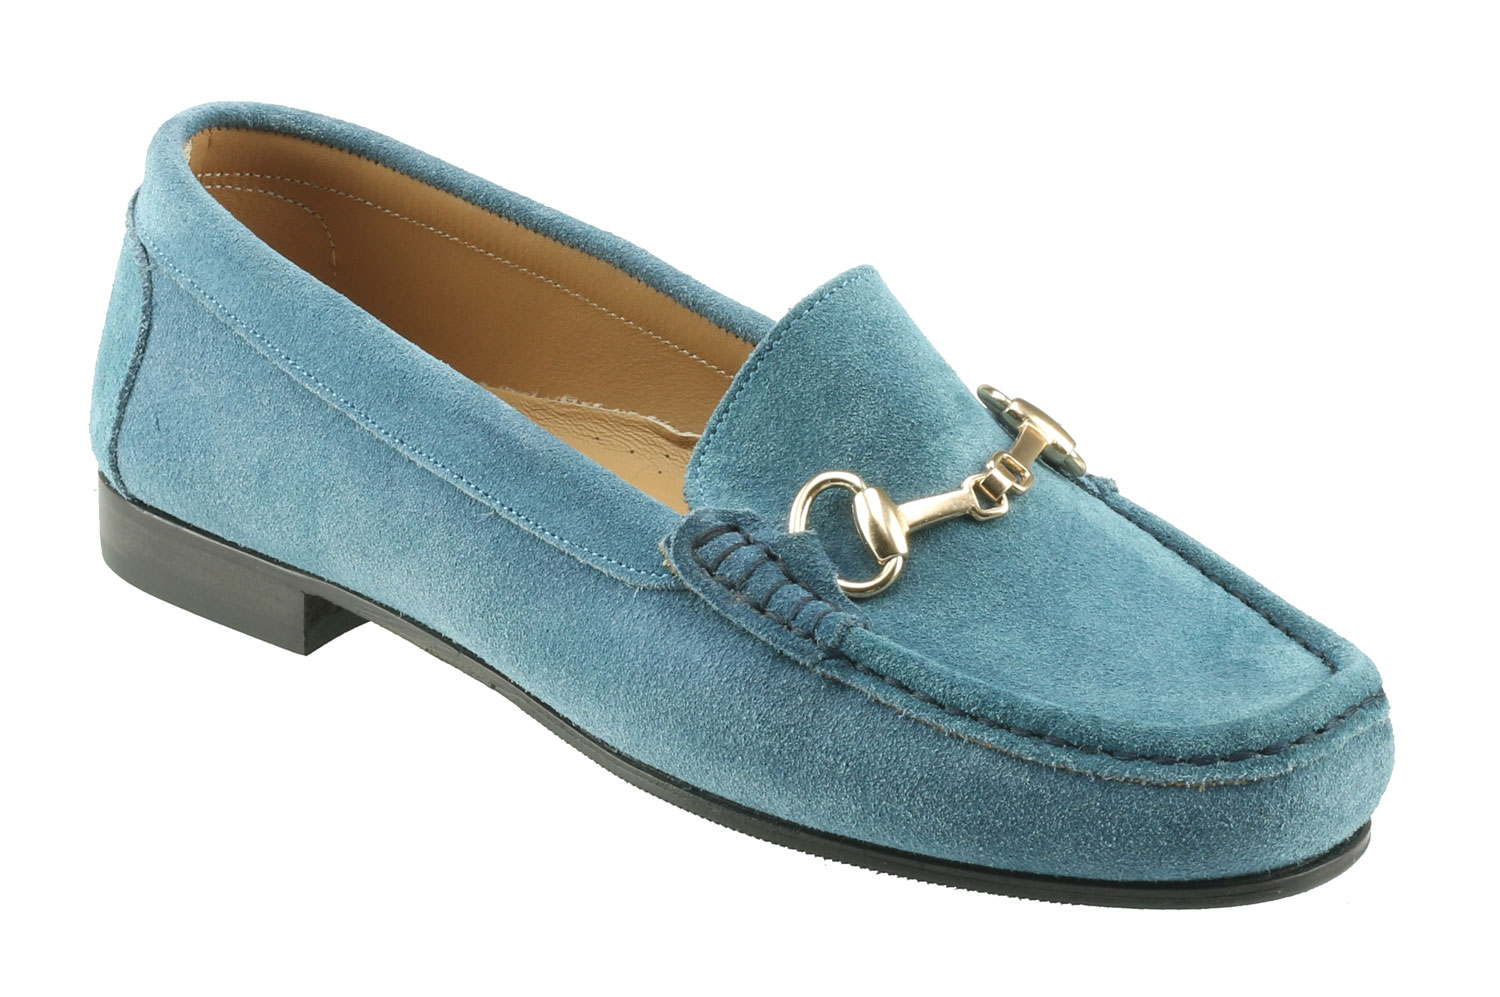 Let Dillard's be your destination for women's loafers, available in regular and extended sizes from all your favorite brands.